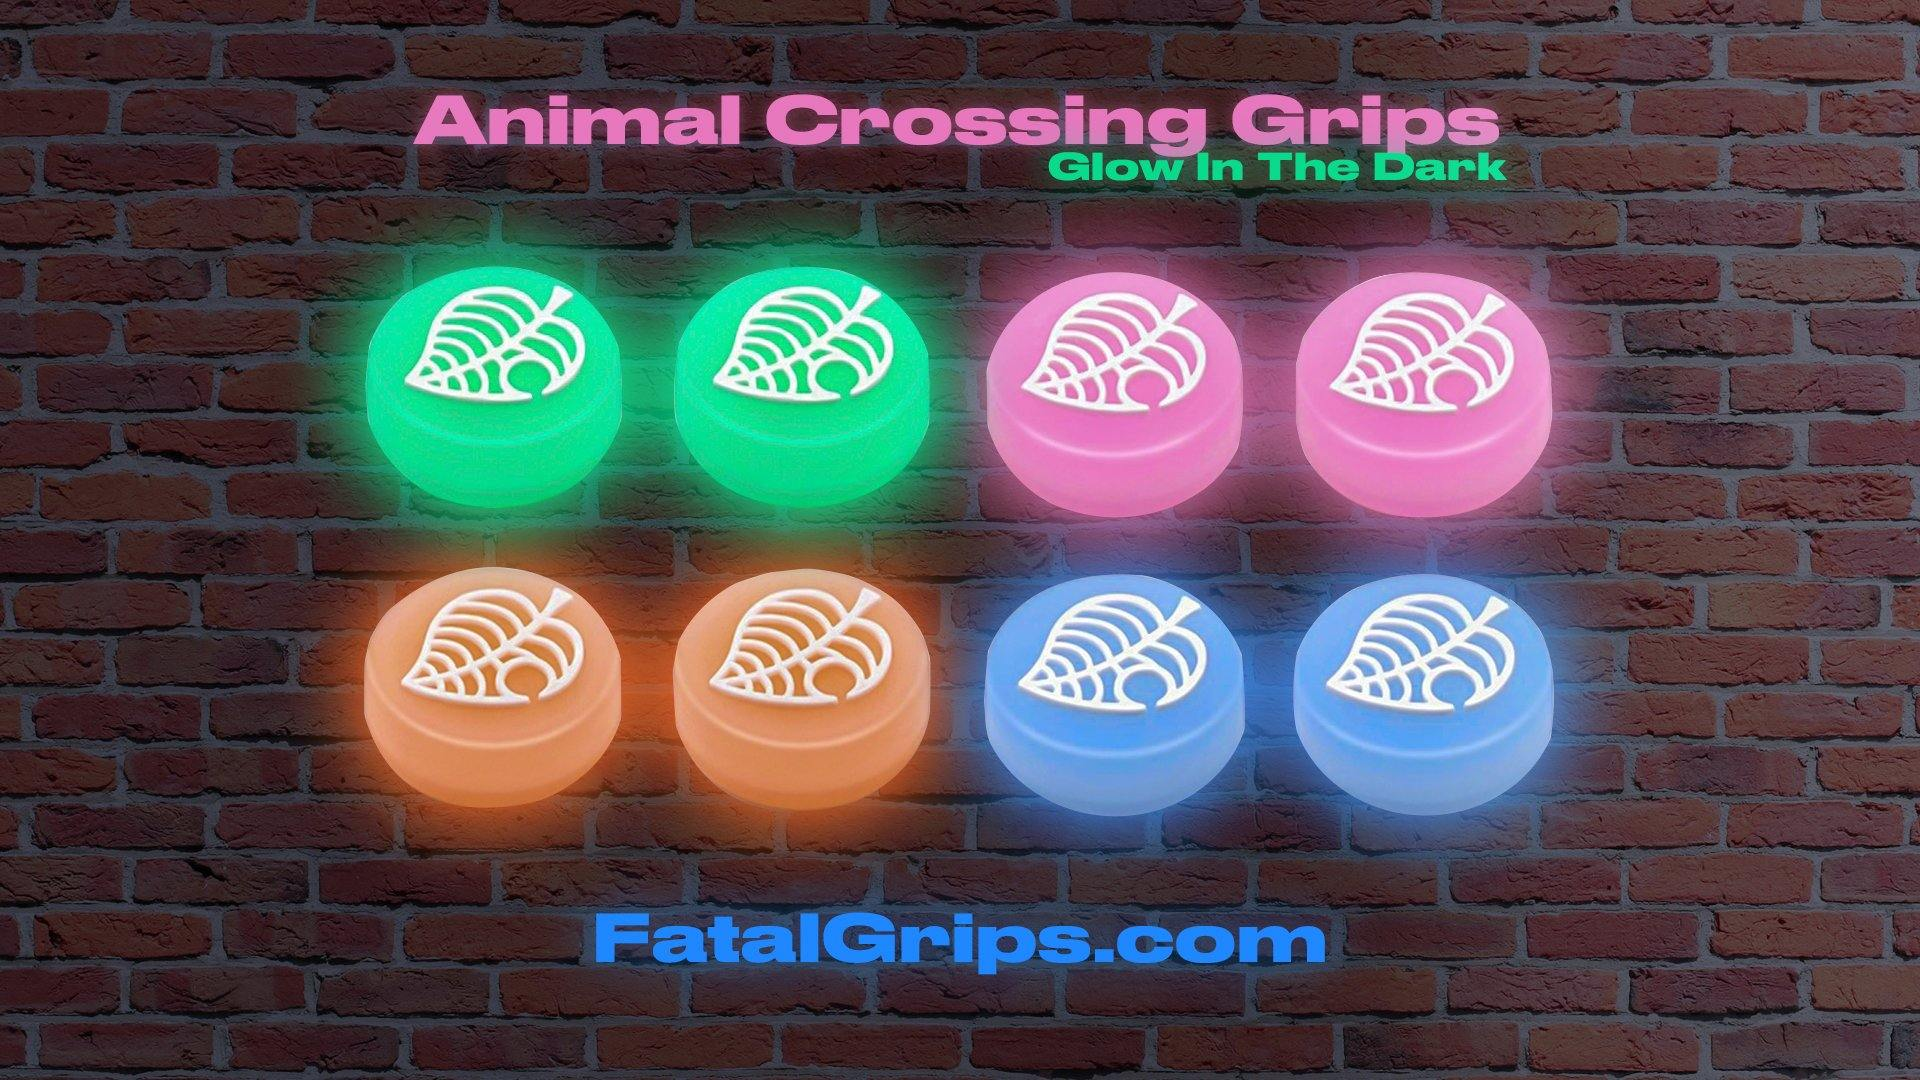 Animal Crossing Glow in the Dark Grips